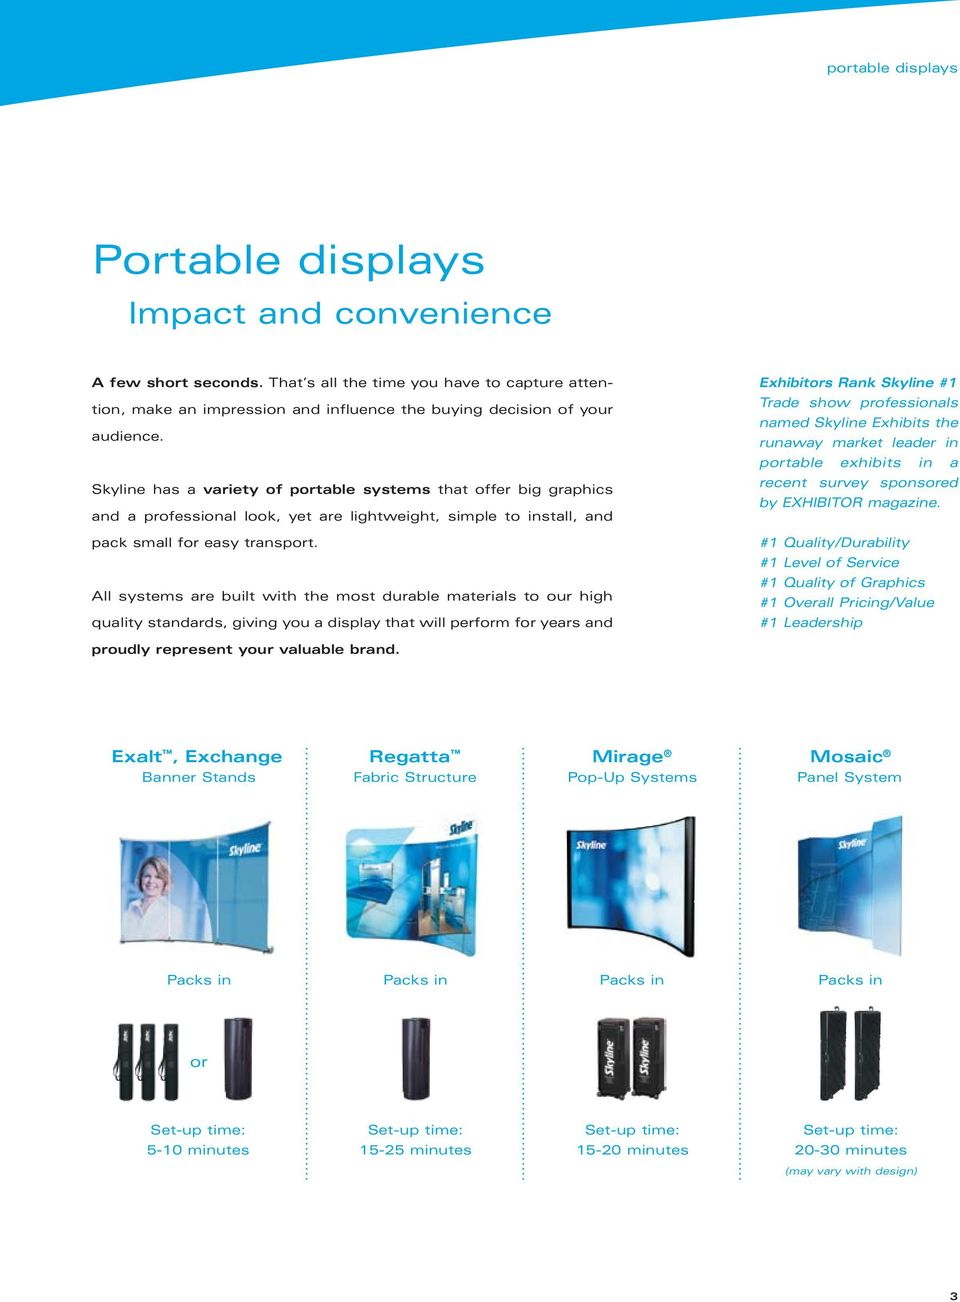 Skyline has a variety of portable systems that offer big graphics and a professional look, yet are lightweight, simple to install, and pack small for easy transport.